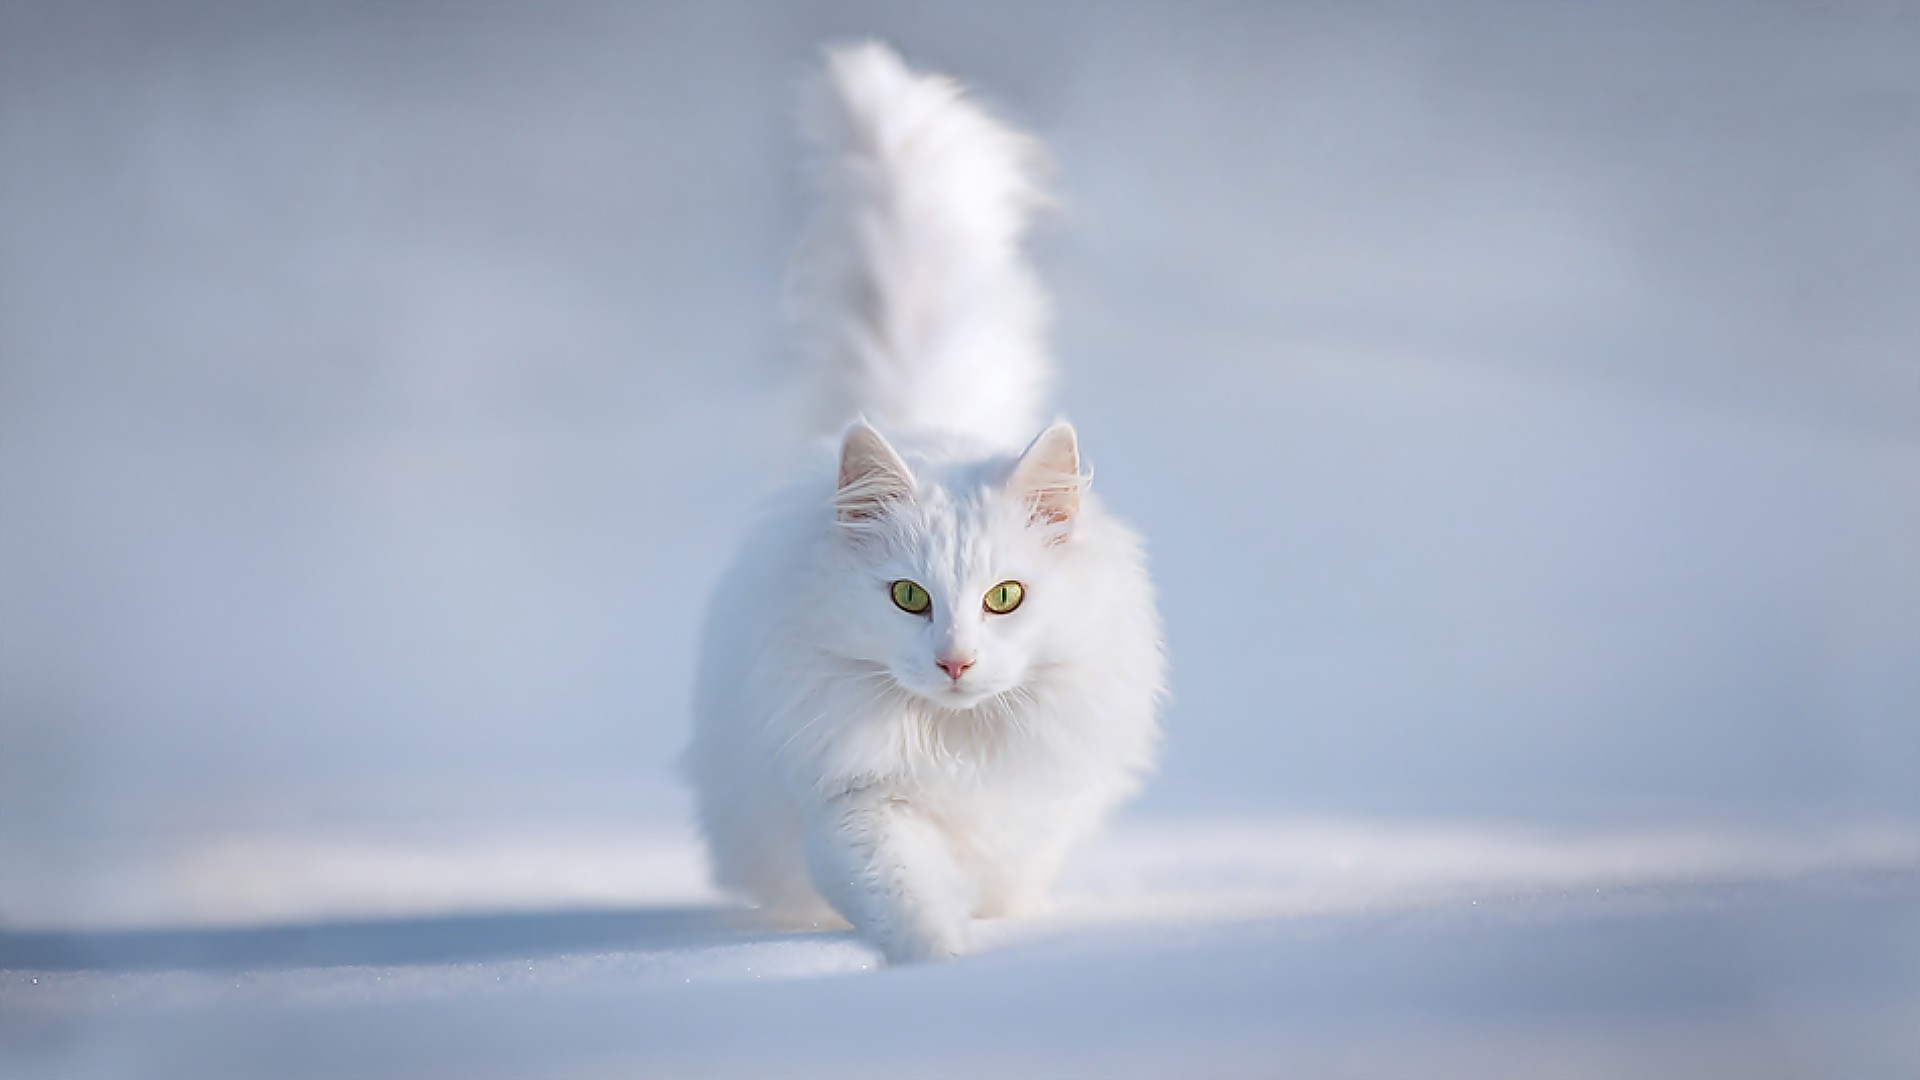 snow white cat - wallpaper, high definition, high quality, widescreen